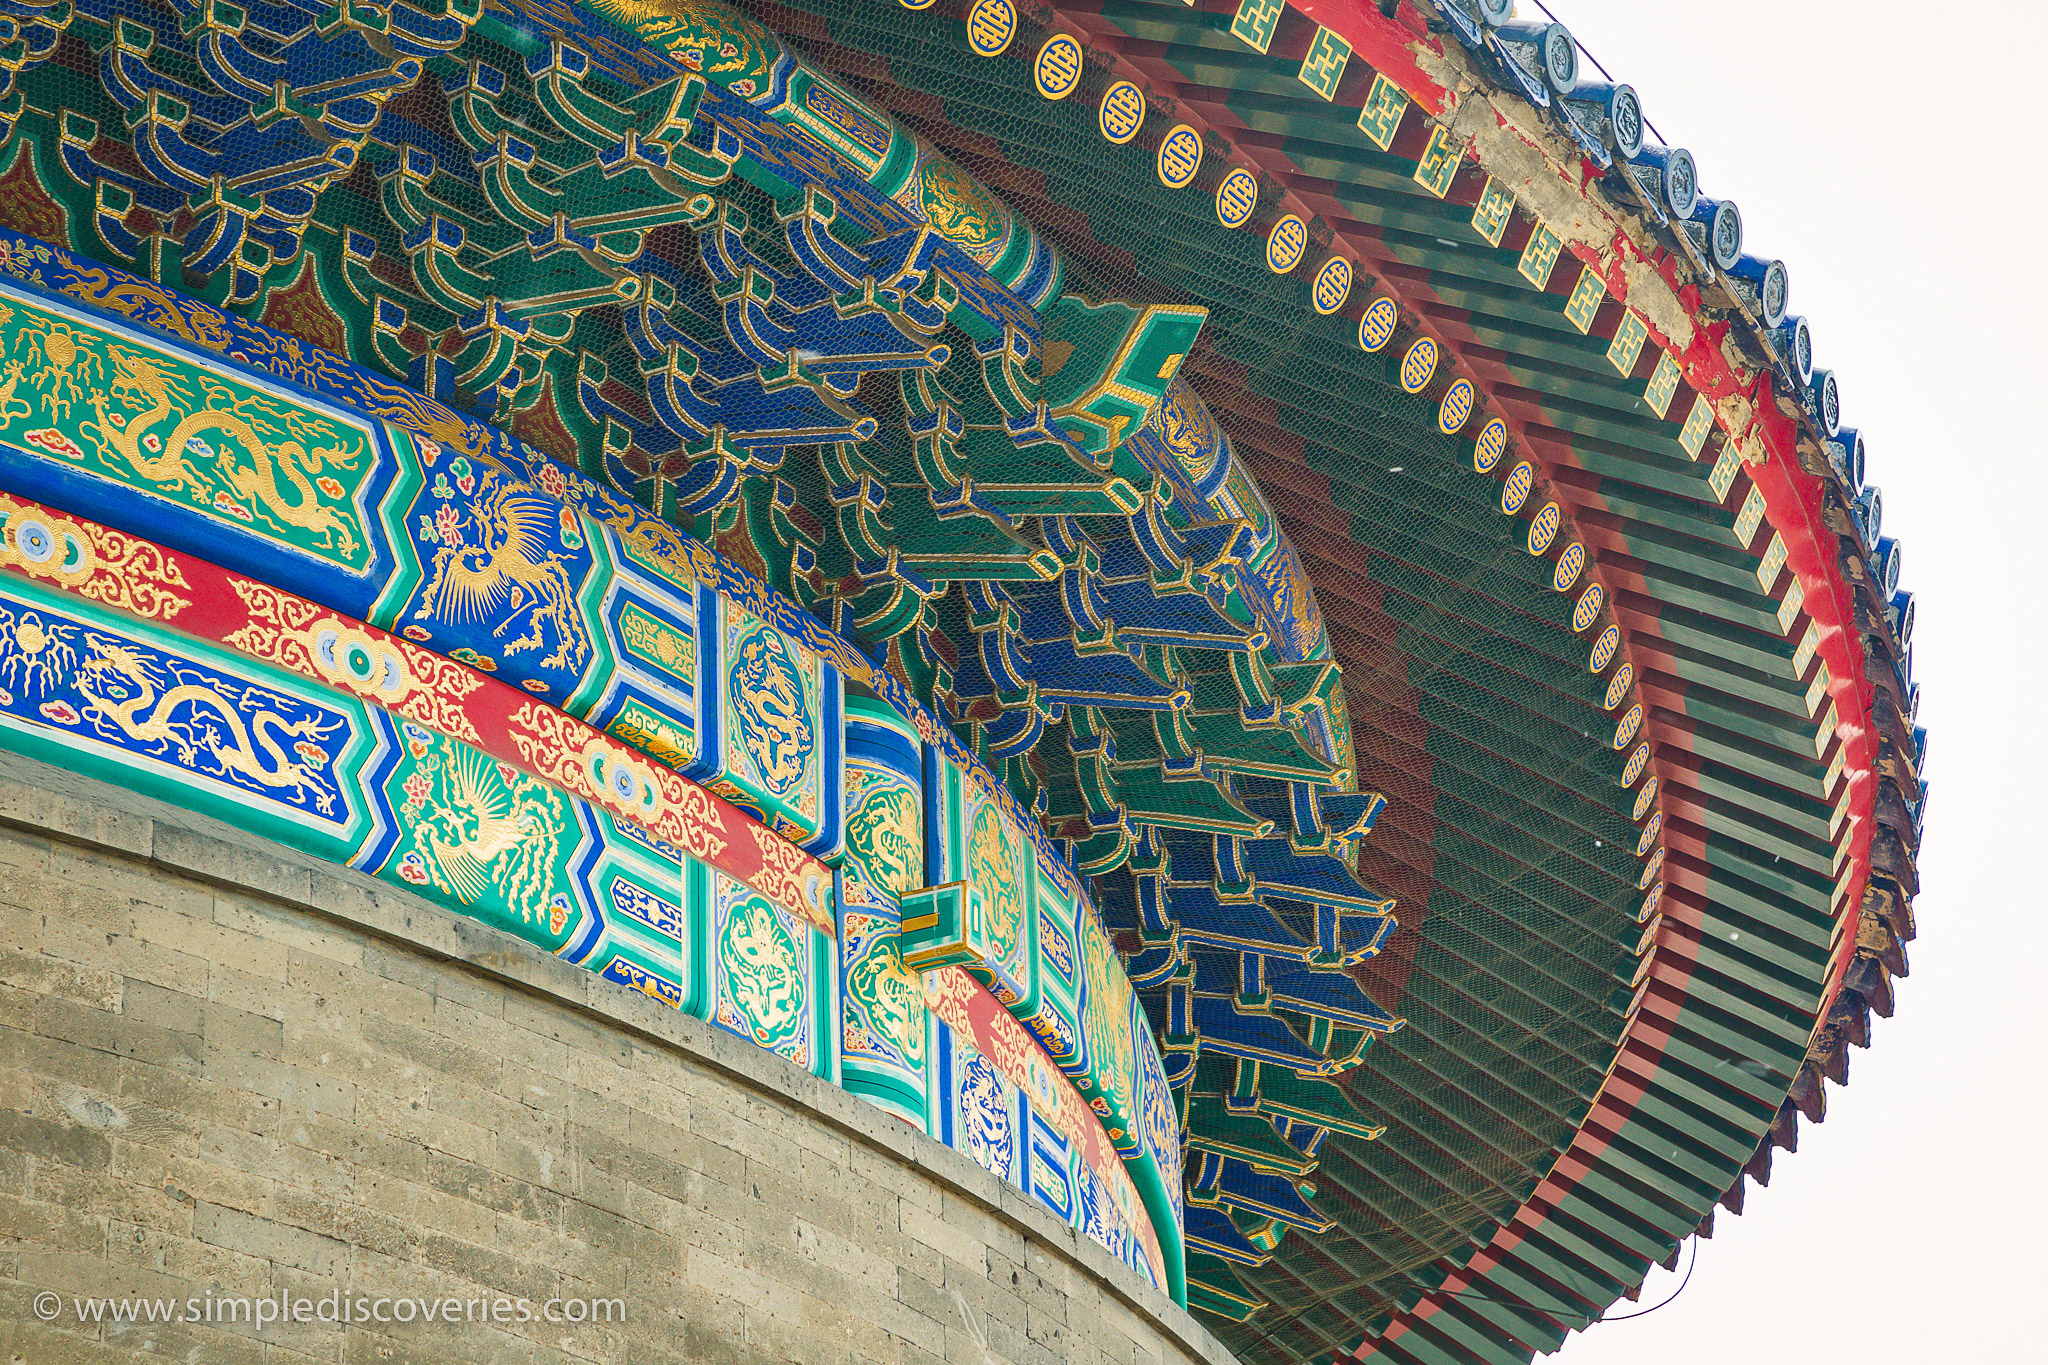 temple_of_heaven_roof_details